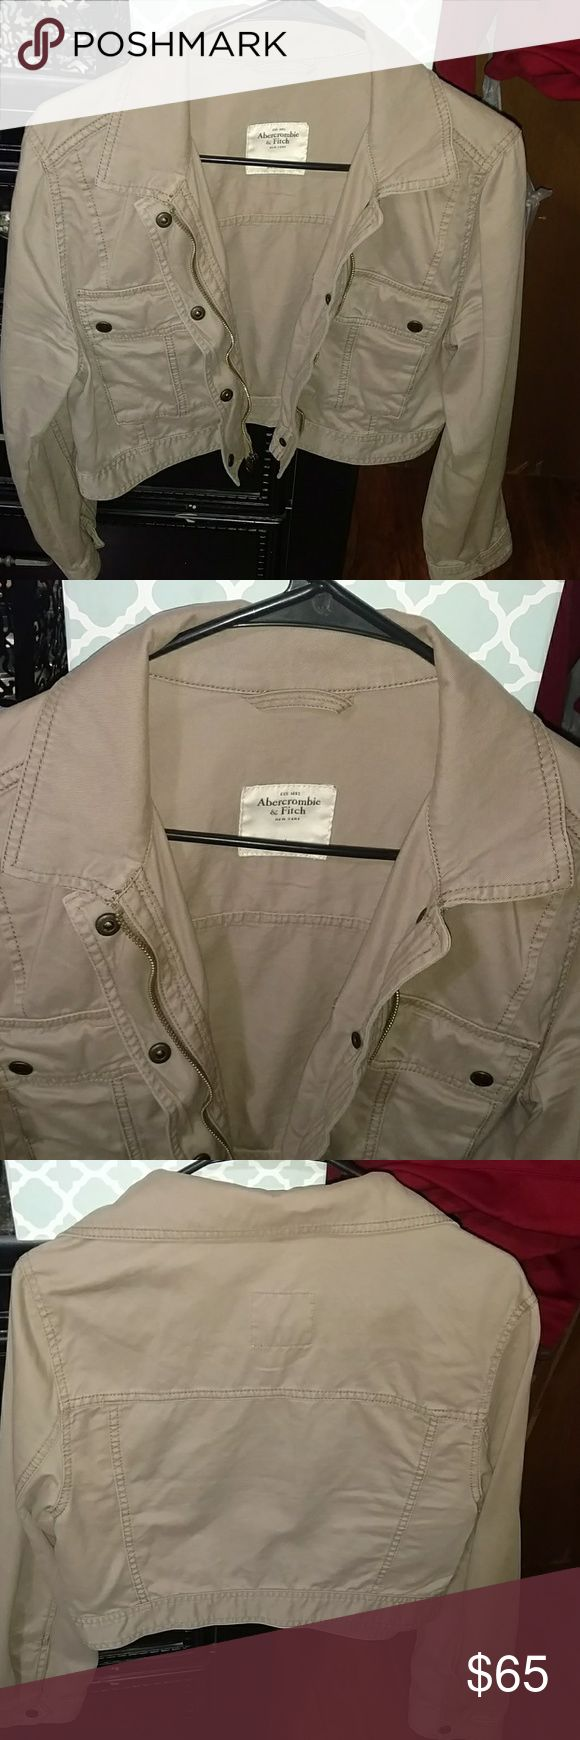 Abercrombie and Fitch Khaki Cropped Jean Jacket Like new. Easy to add to any outfit and very lightweight. Abercrombie & Fitch Jackets & Coats Jean Jackets